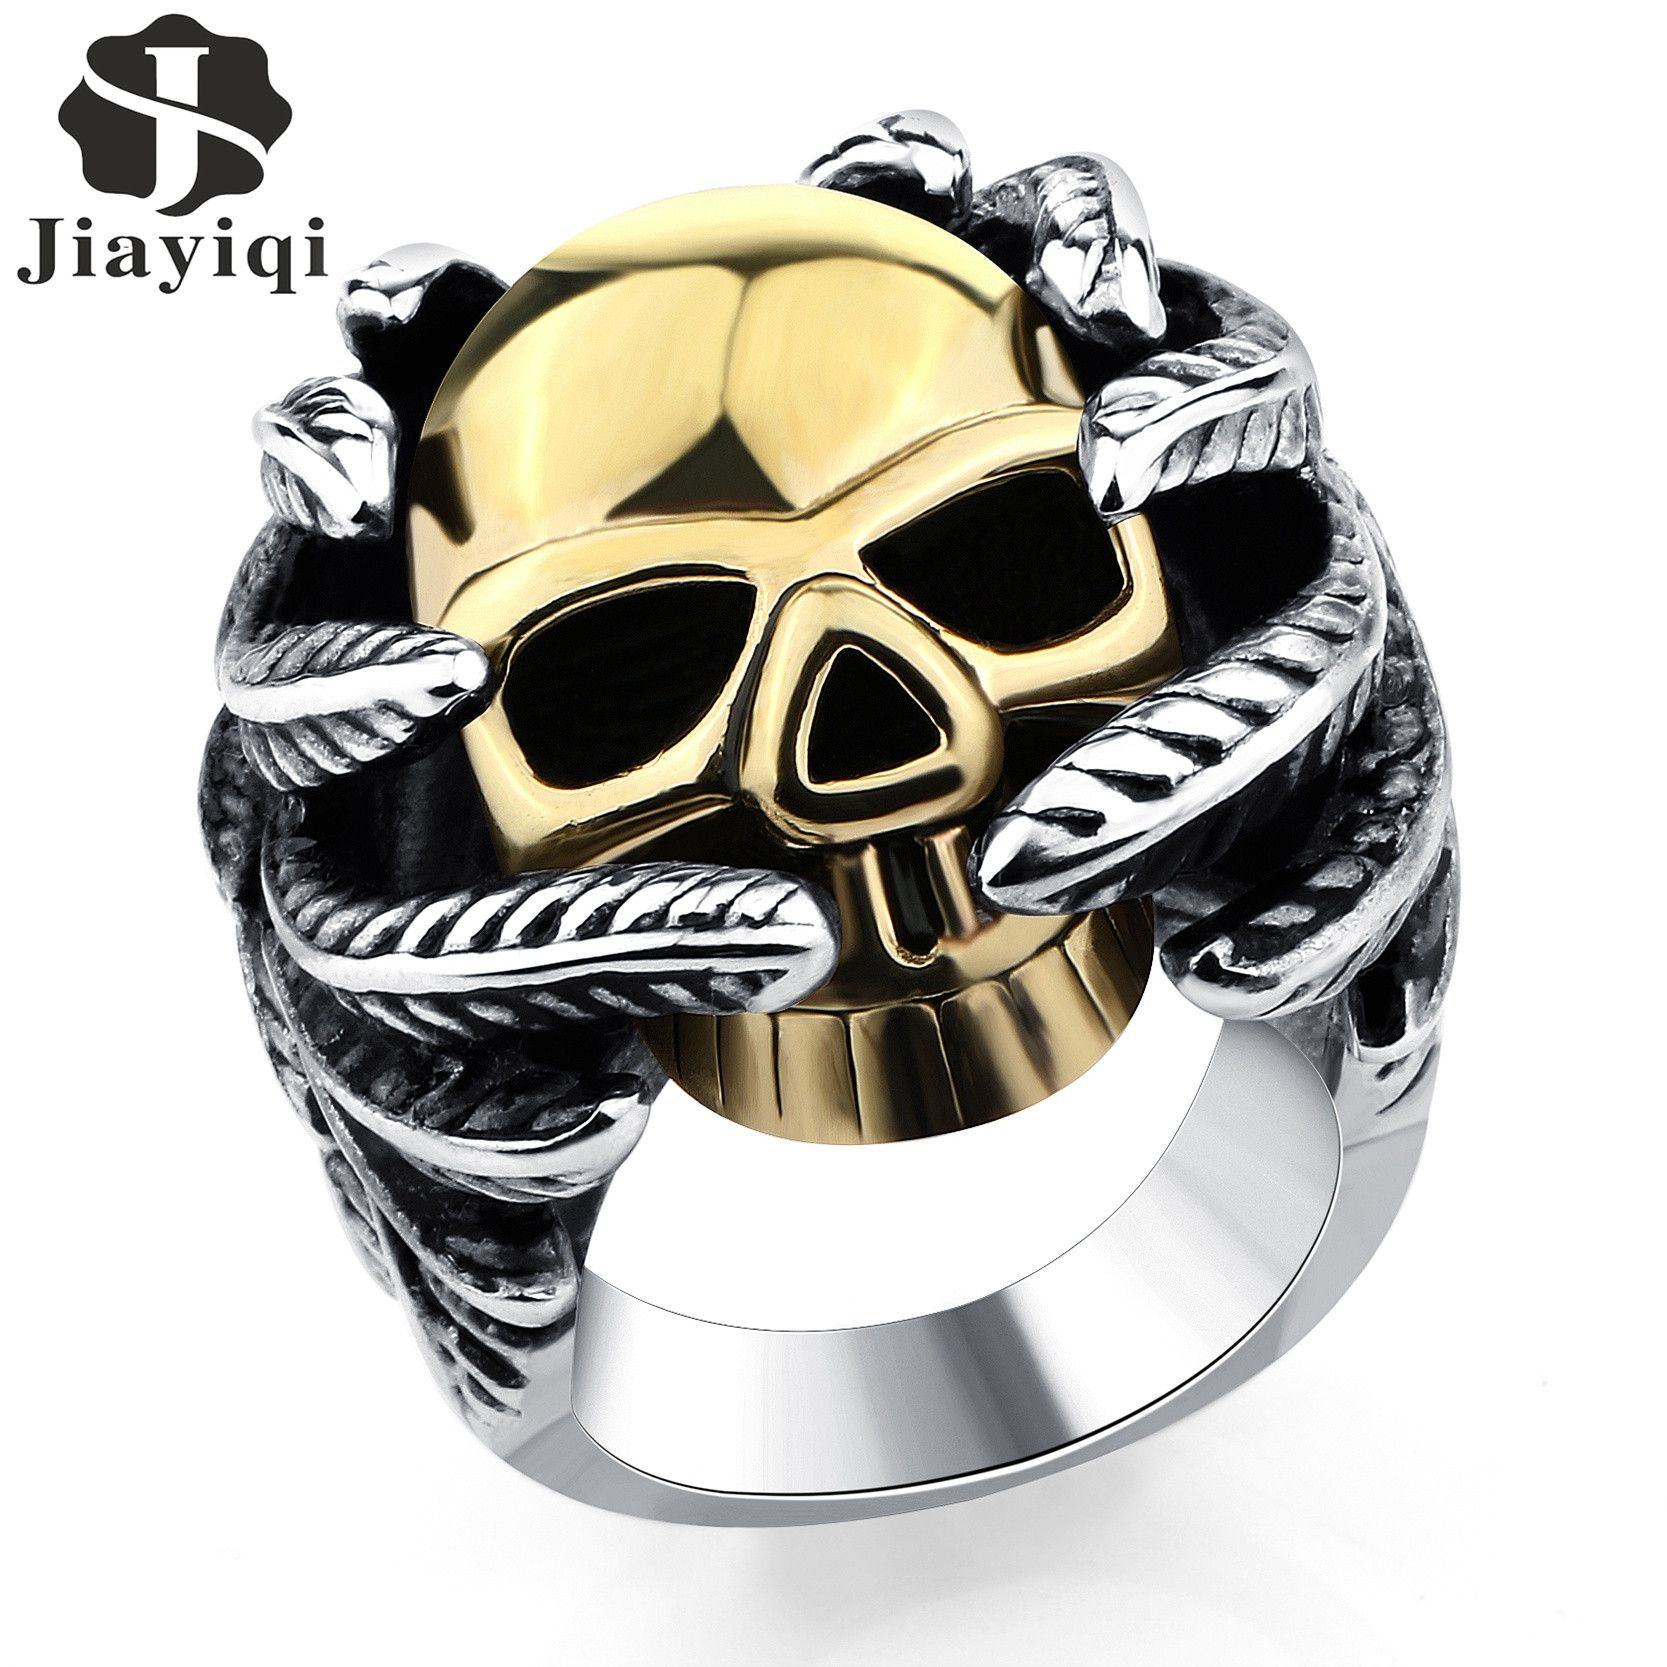 diamonds men beer rings vintage black gothic opener jewelry fashion tanzanite product size skull scar male stainless jaw steel bottle skeleton punk for